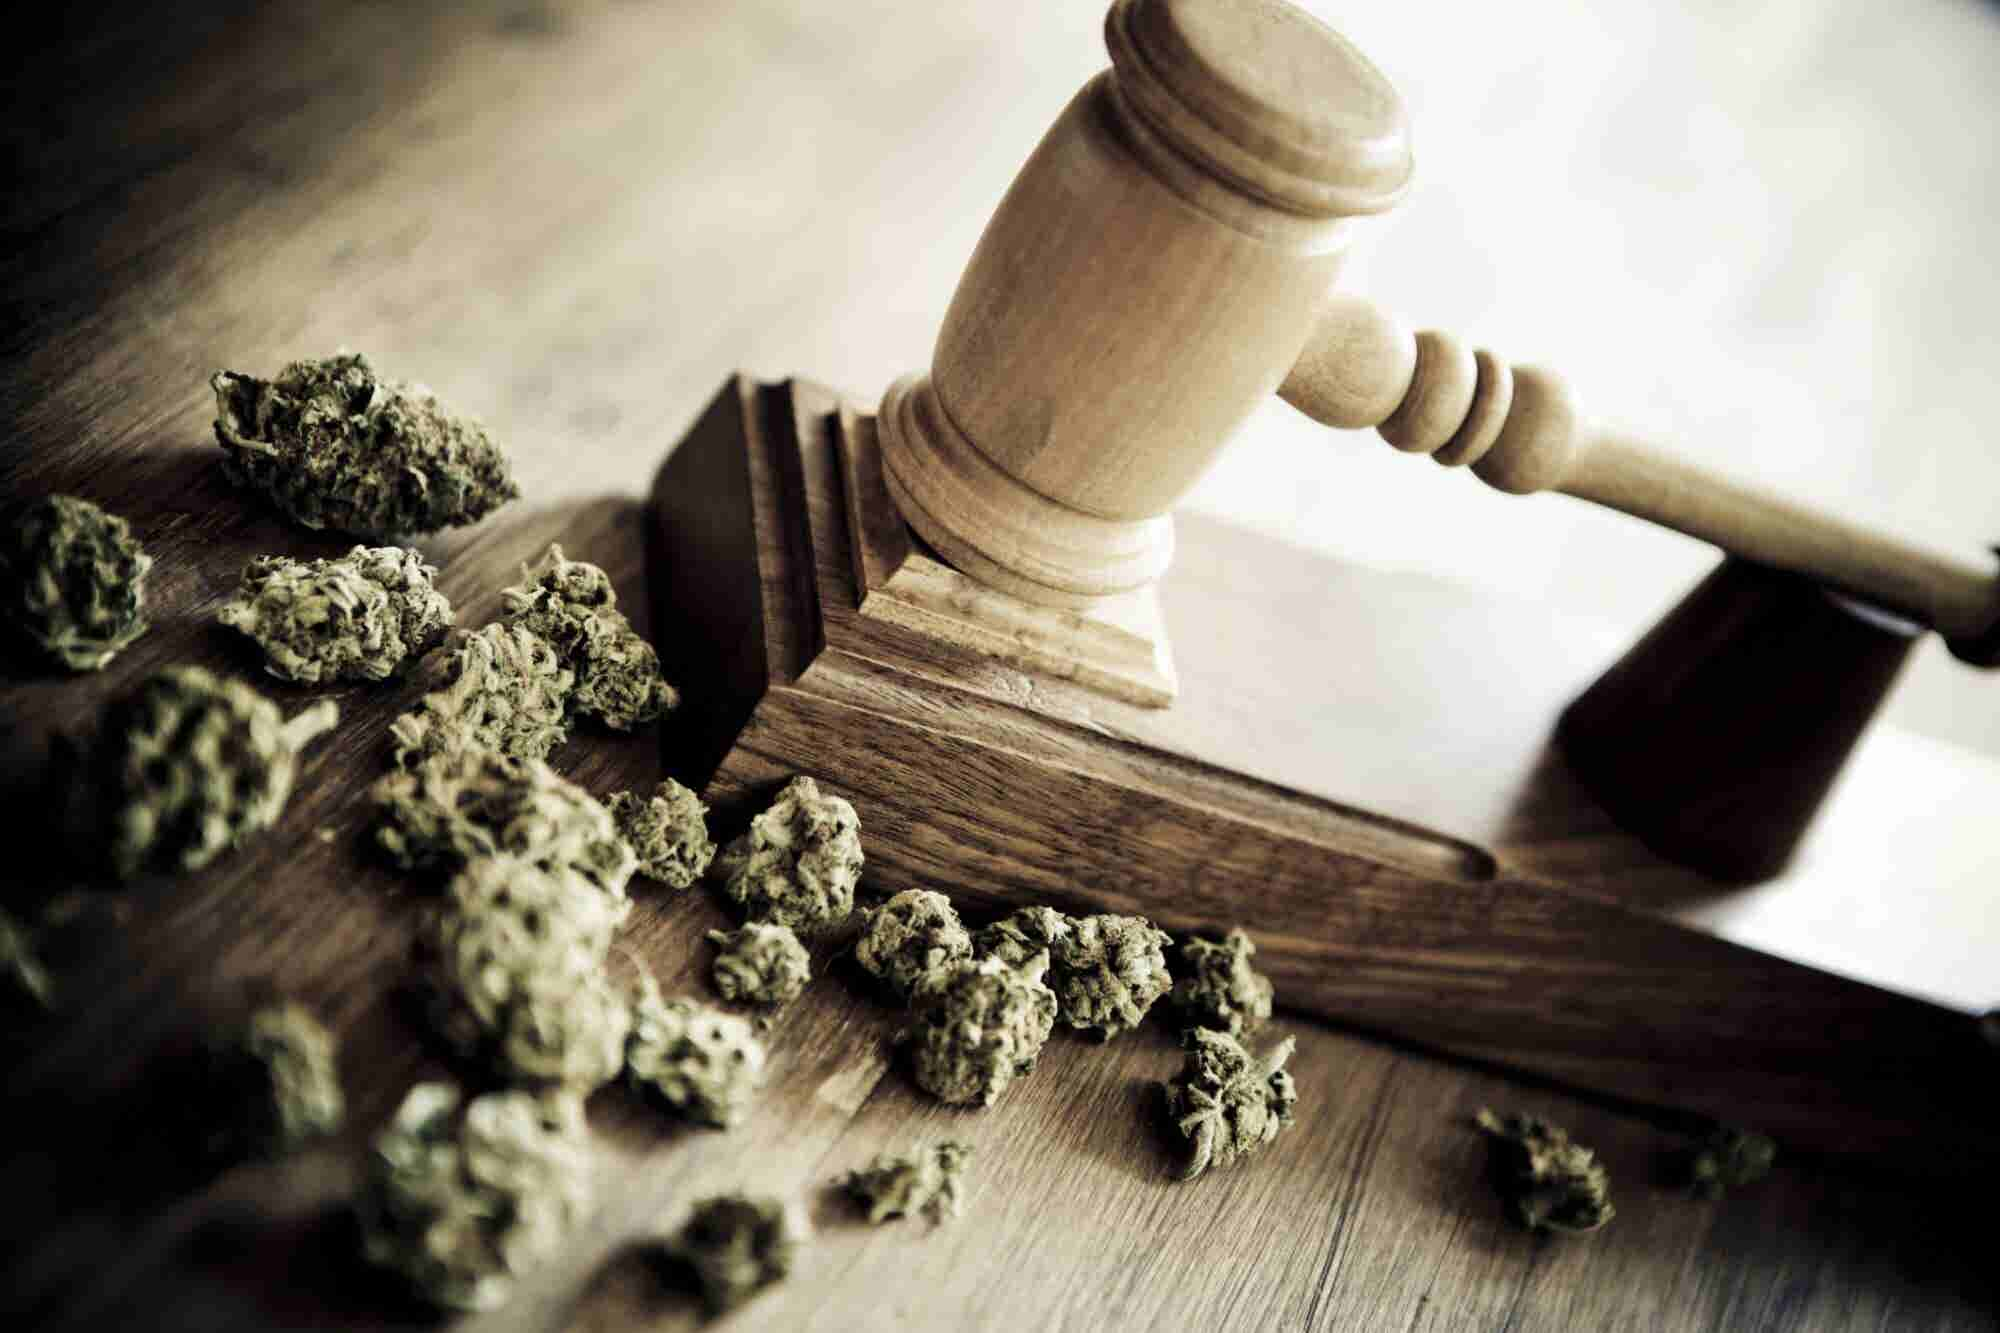 This Is Non-Negotiable: Cannabis Legalization Must Include Restorative Justice